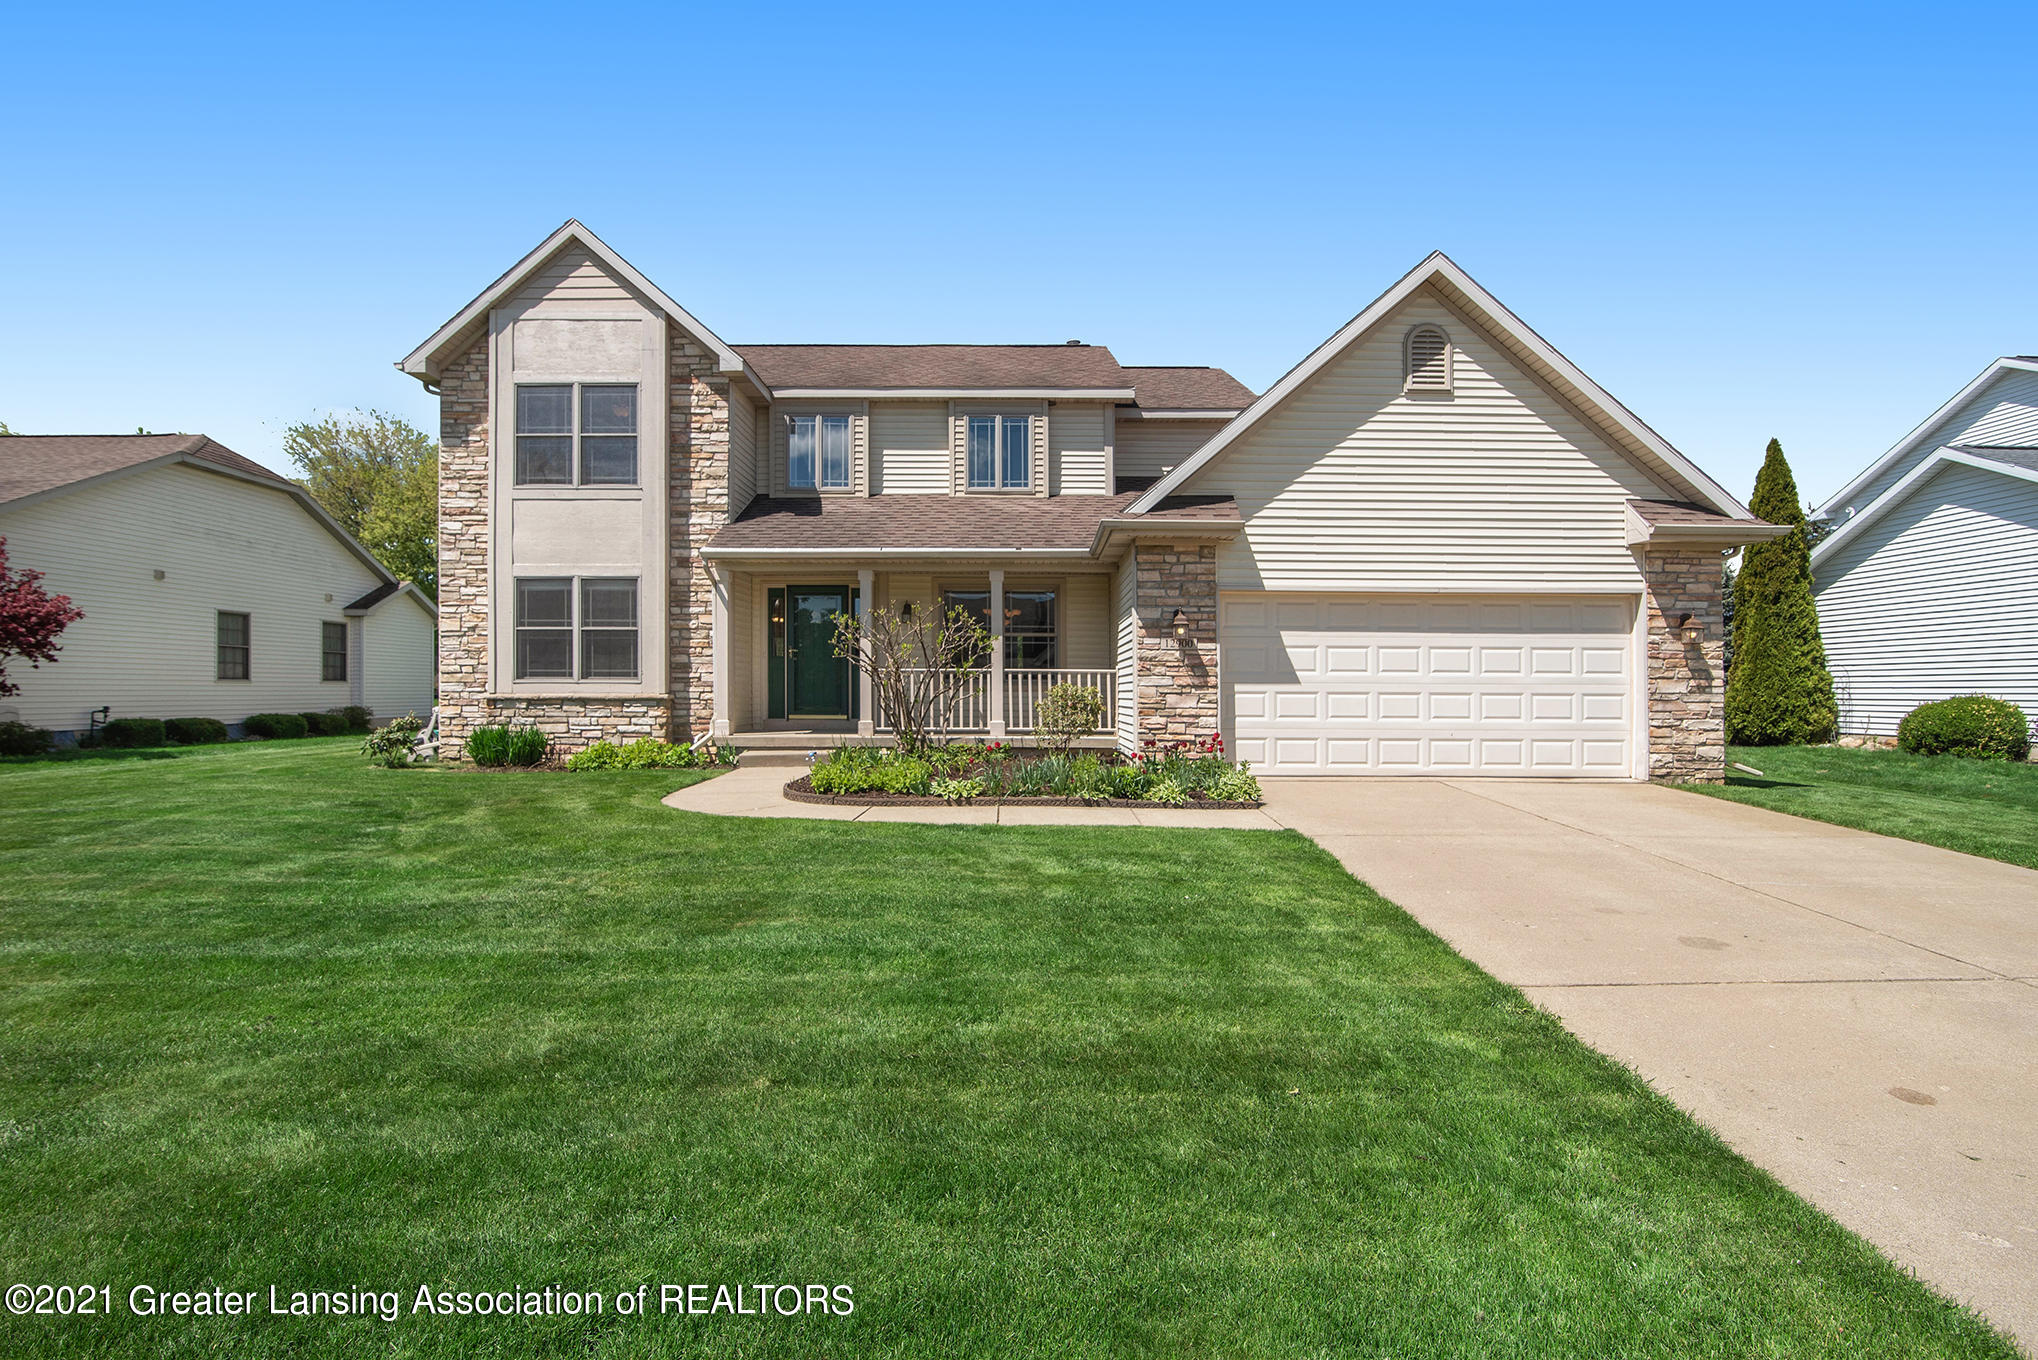 12900 Chartreuse Dr - 1 - 1